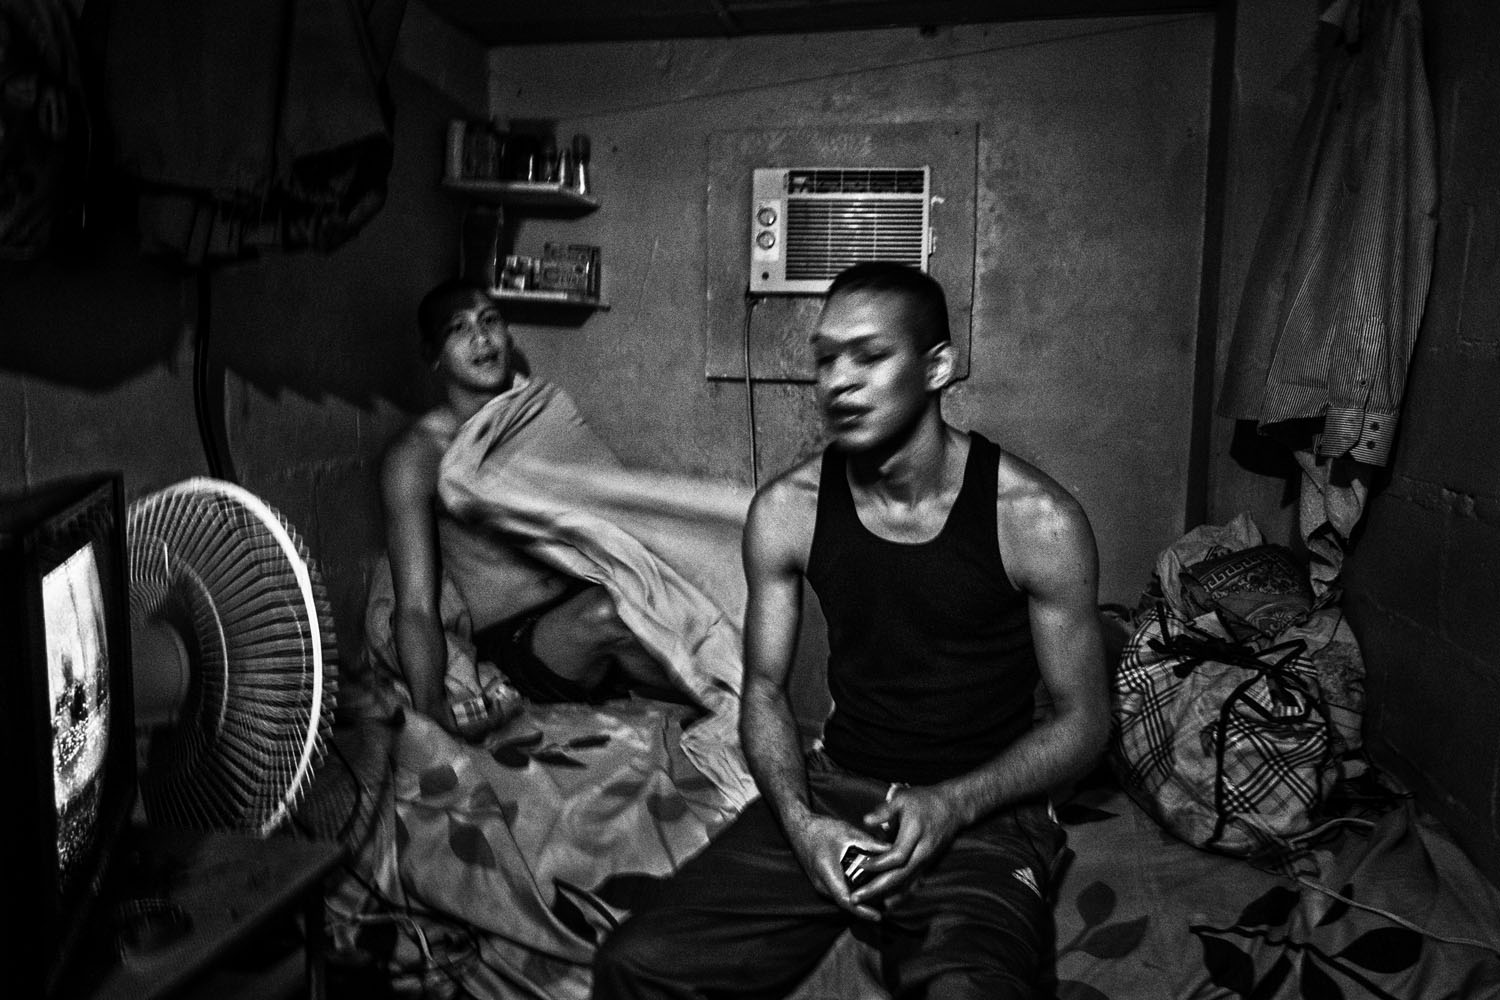 A small cell houses two brothers, with beds, a roof, air conditioning and a television. Such amenities are made available because they have made payments to the leaders of the prison, about $10 each.